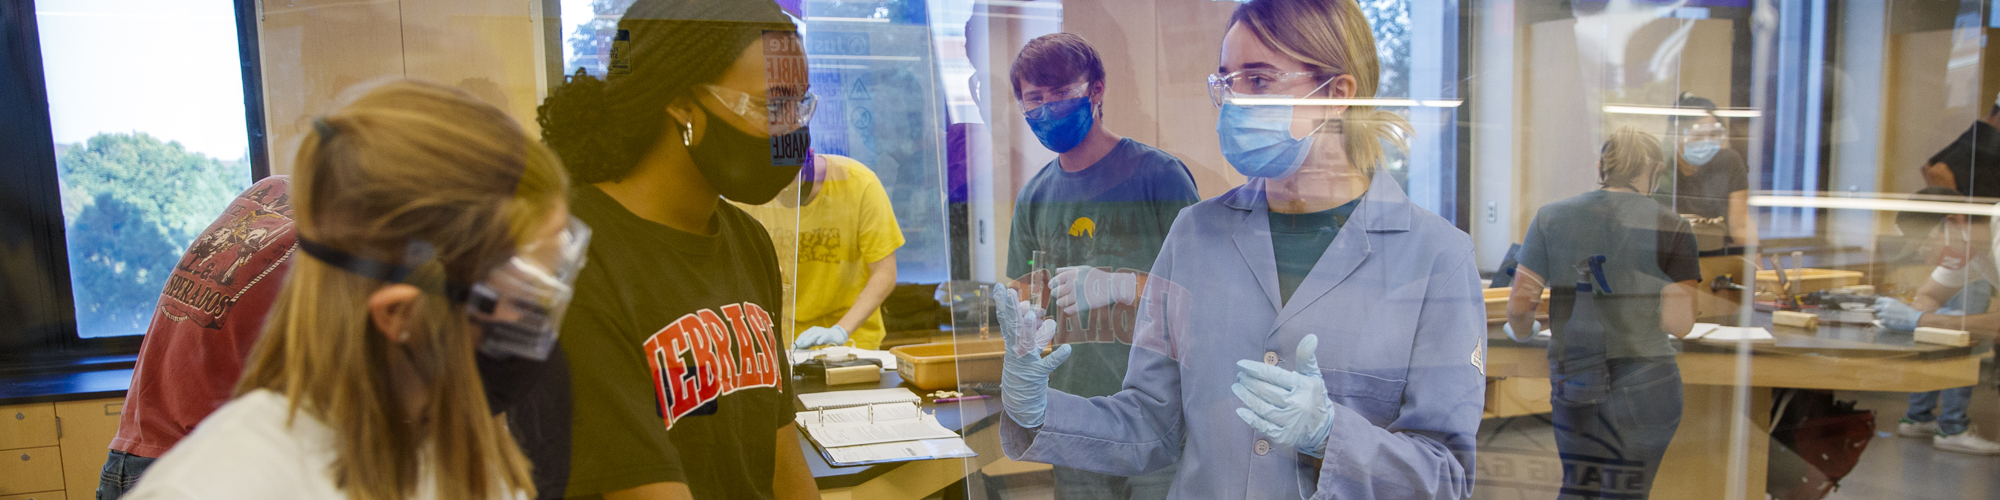 Students in lab with masks